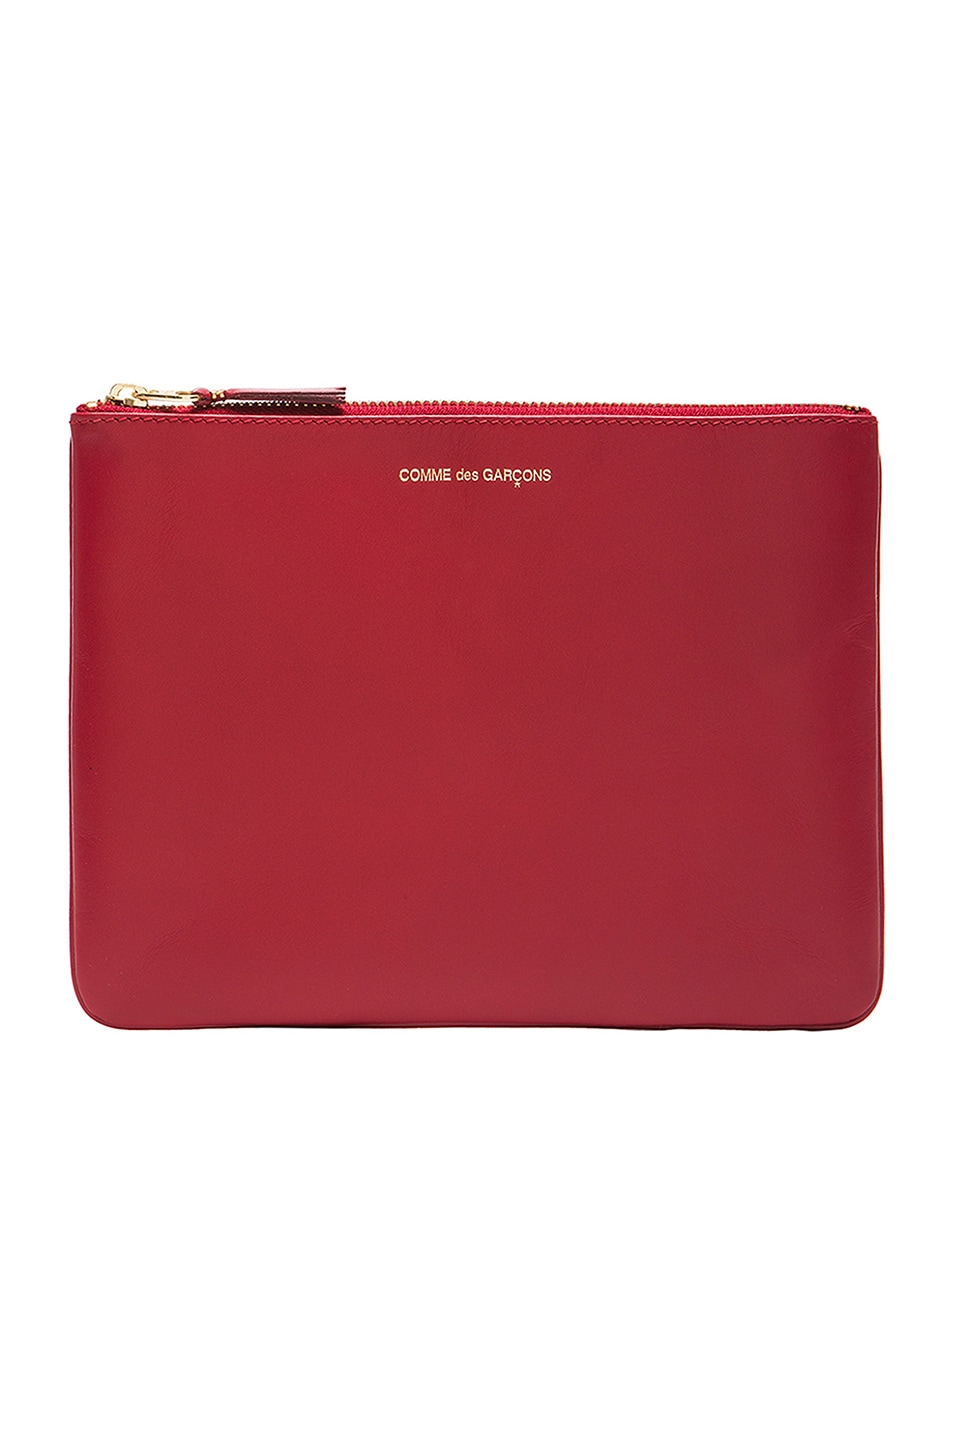 Image 1 of Comme Des Garcons Classic Pouch in Red